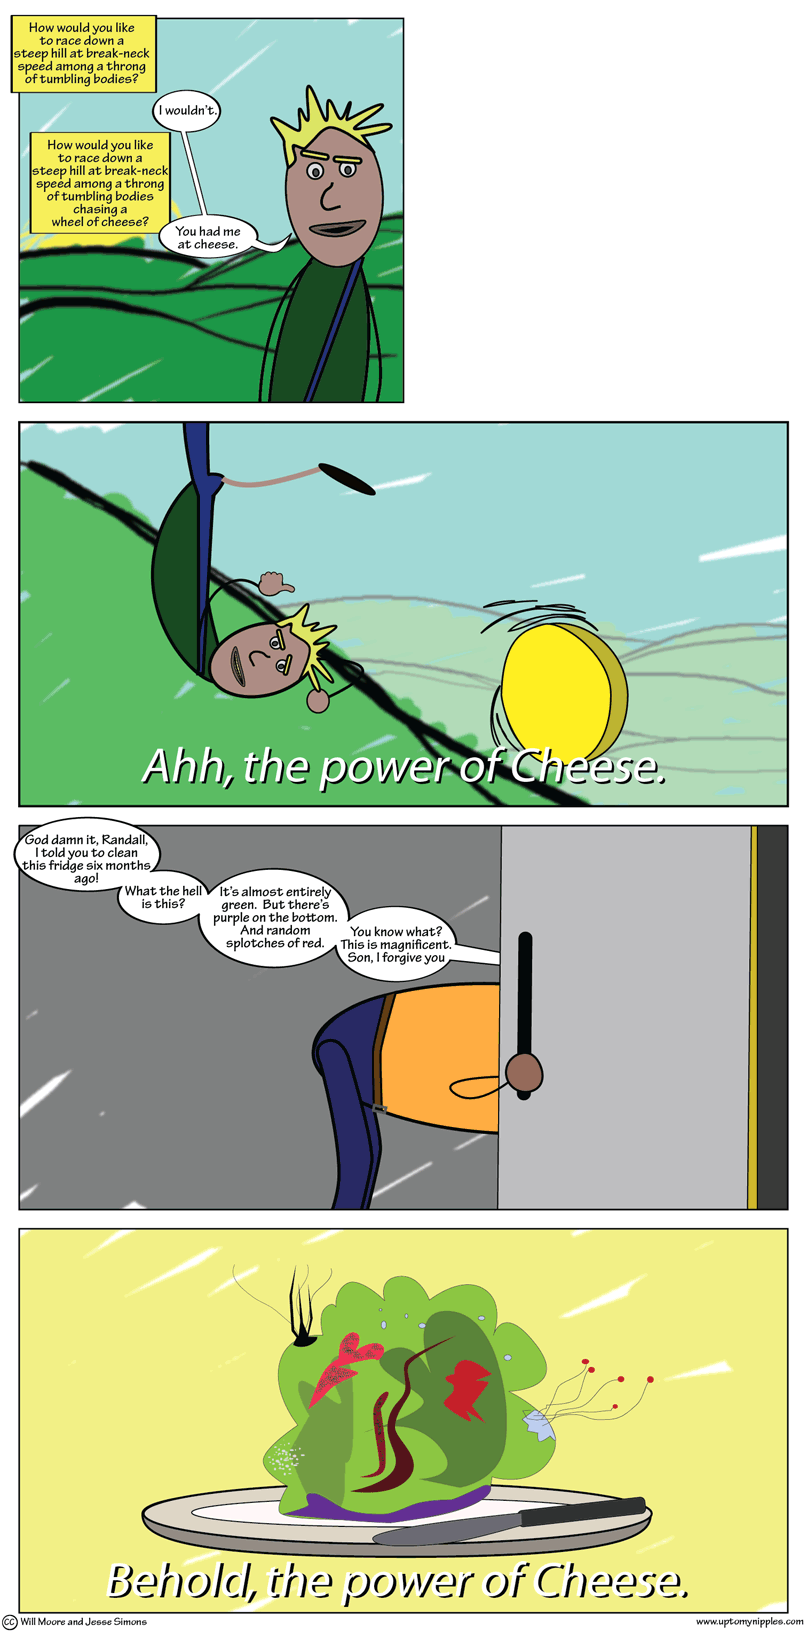 The Power of Cheese 1 and 2 comic